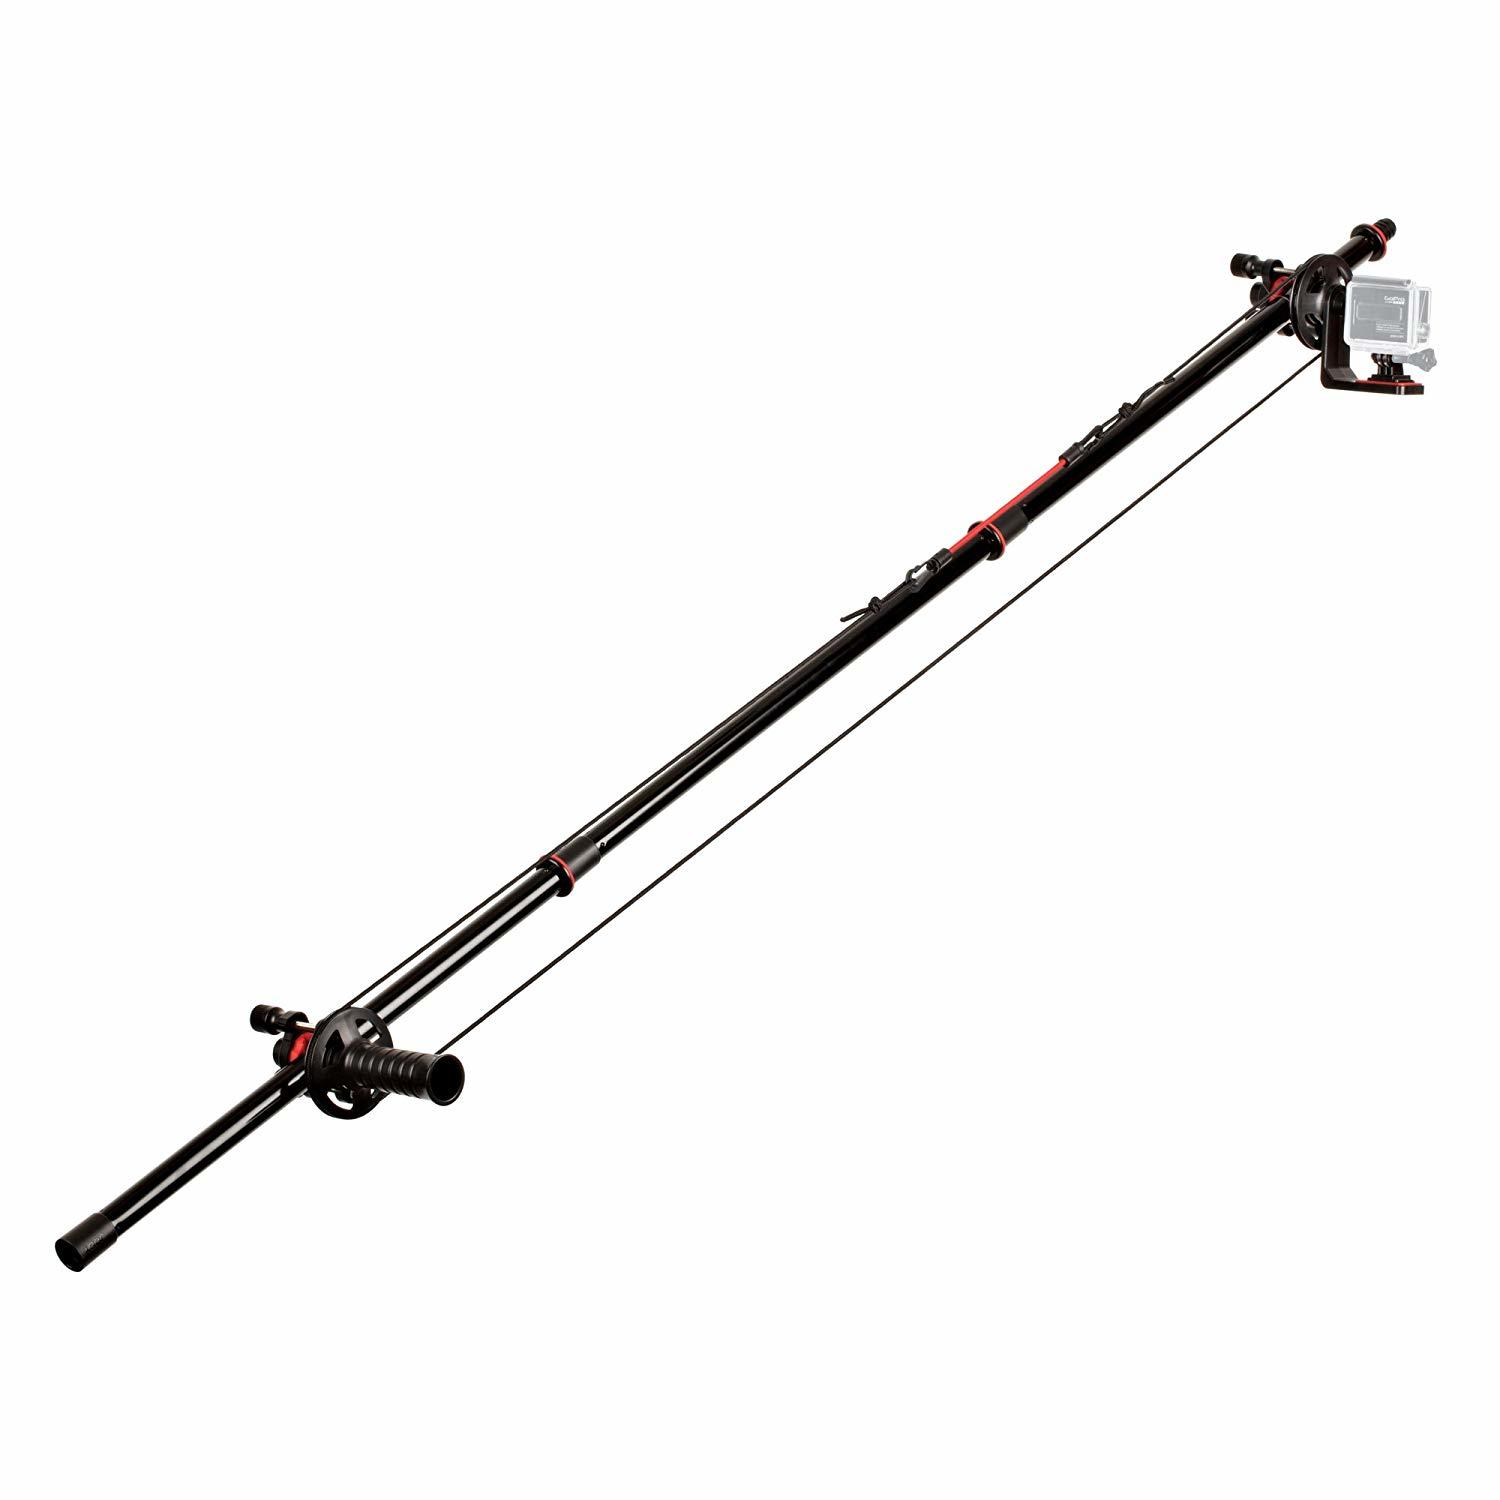 Joby Action Jib Kit and Pole Pack for Camera